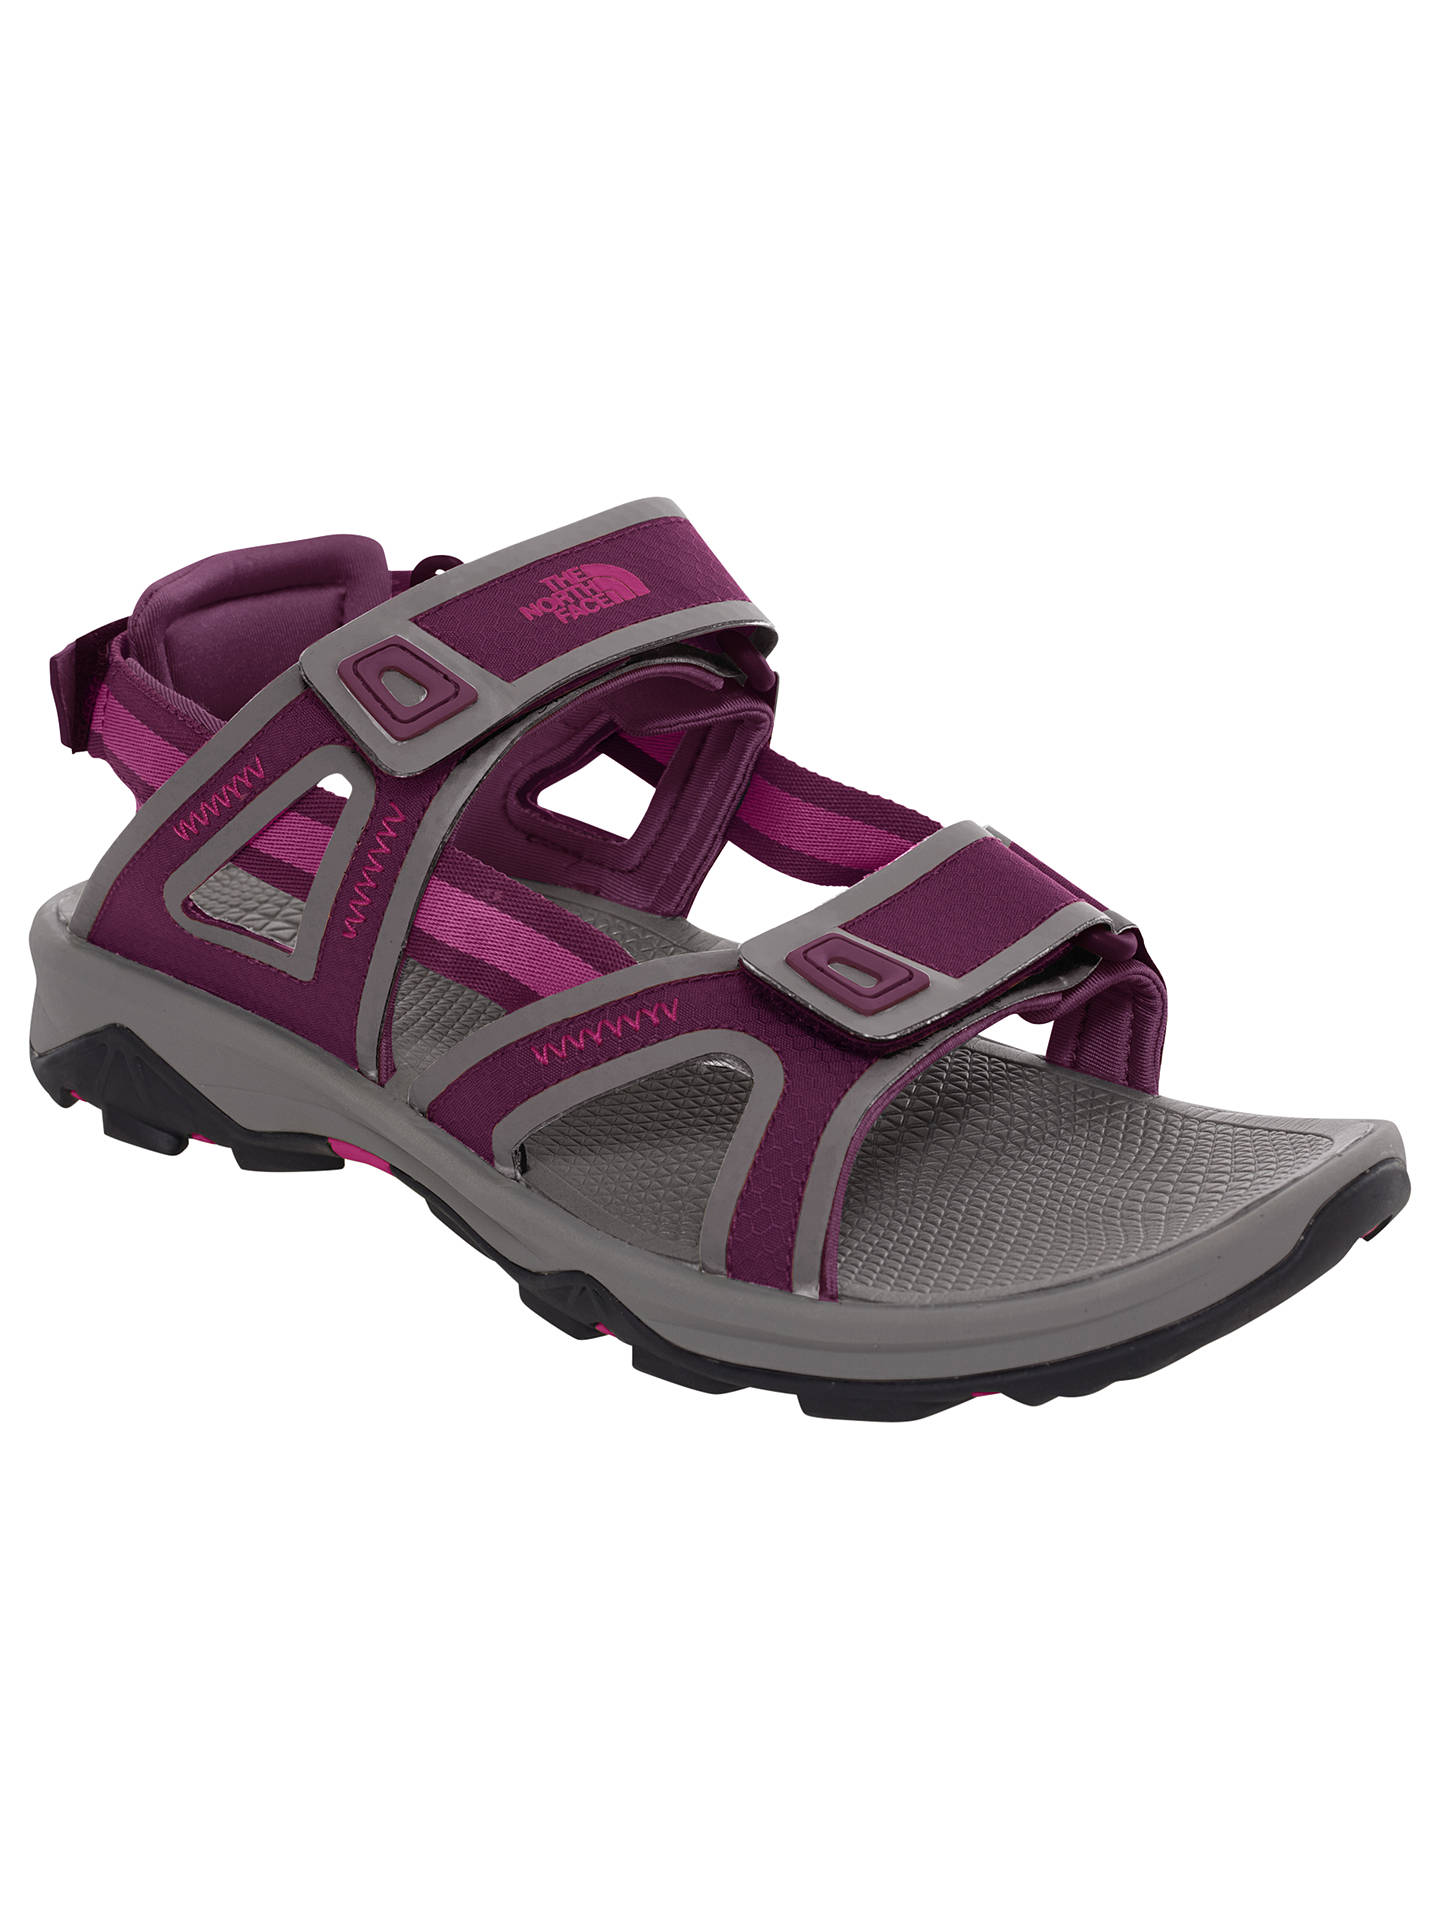 142e40ee0 The North Face Hedgehog II Women's Sandals, Purple at John Lewis ...